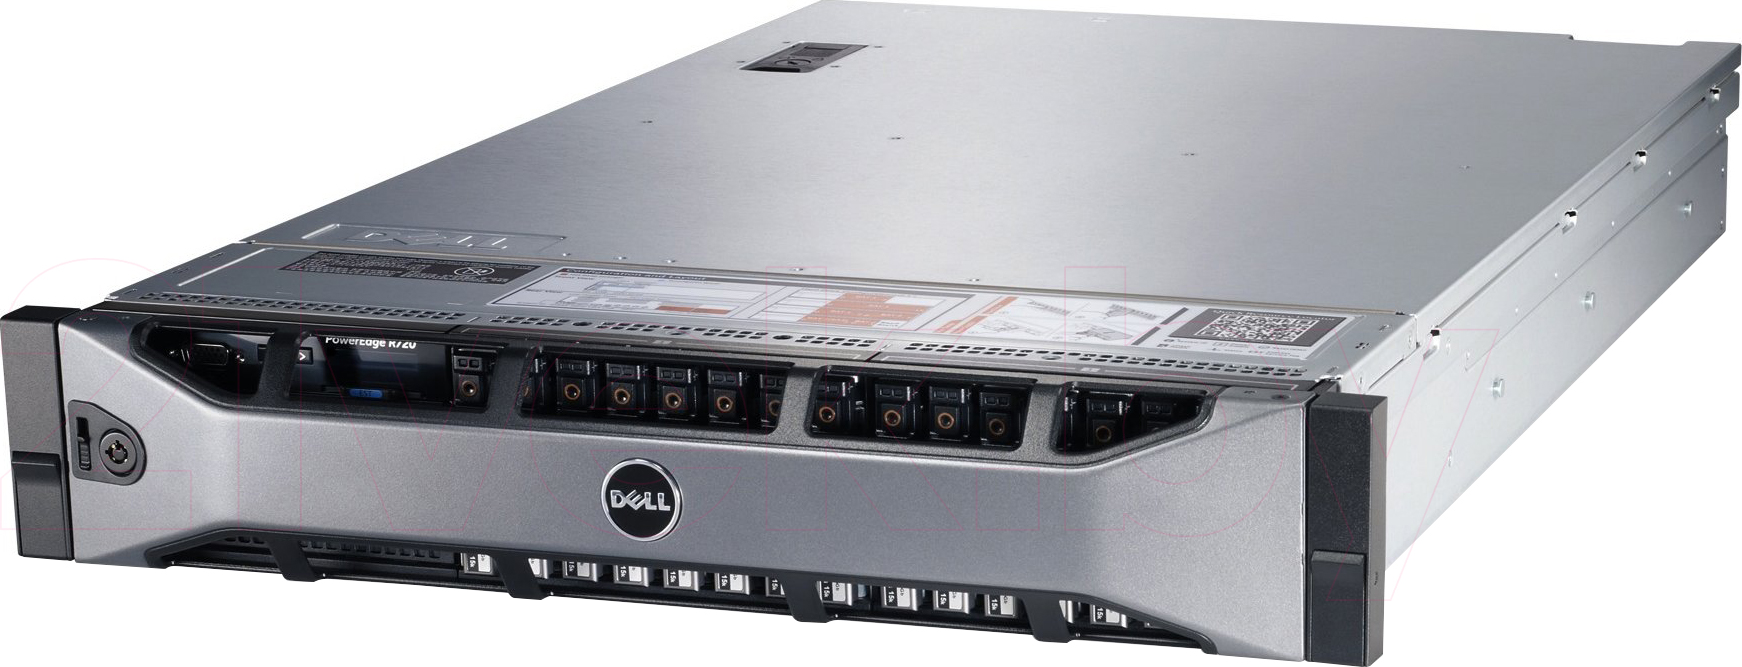 PowerEdge R720 210-ABMX 21vek.by 40255000.000